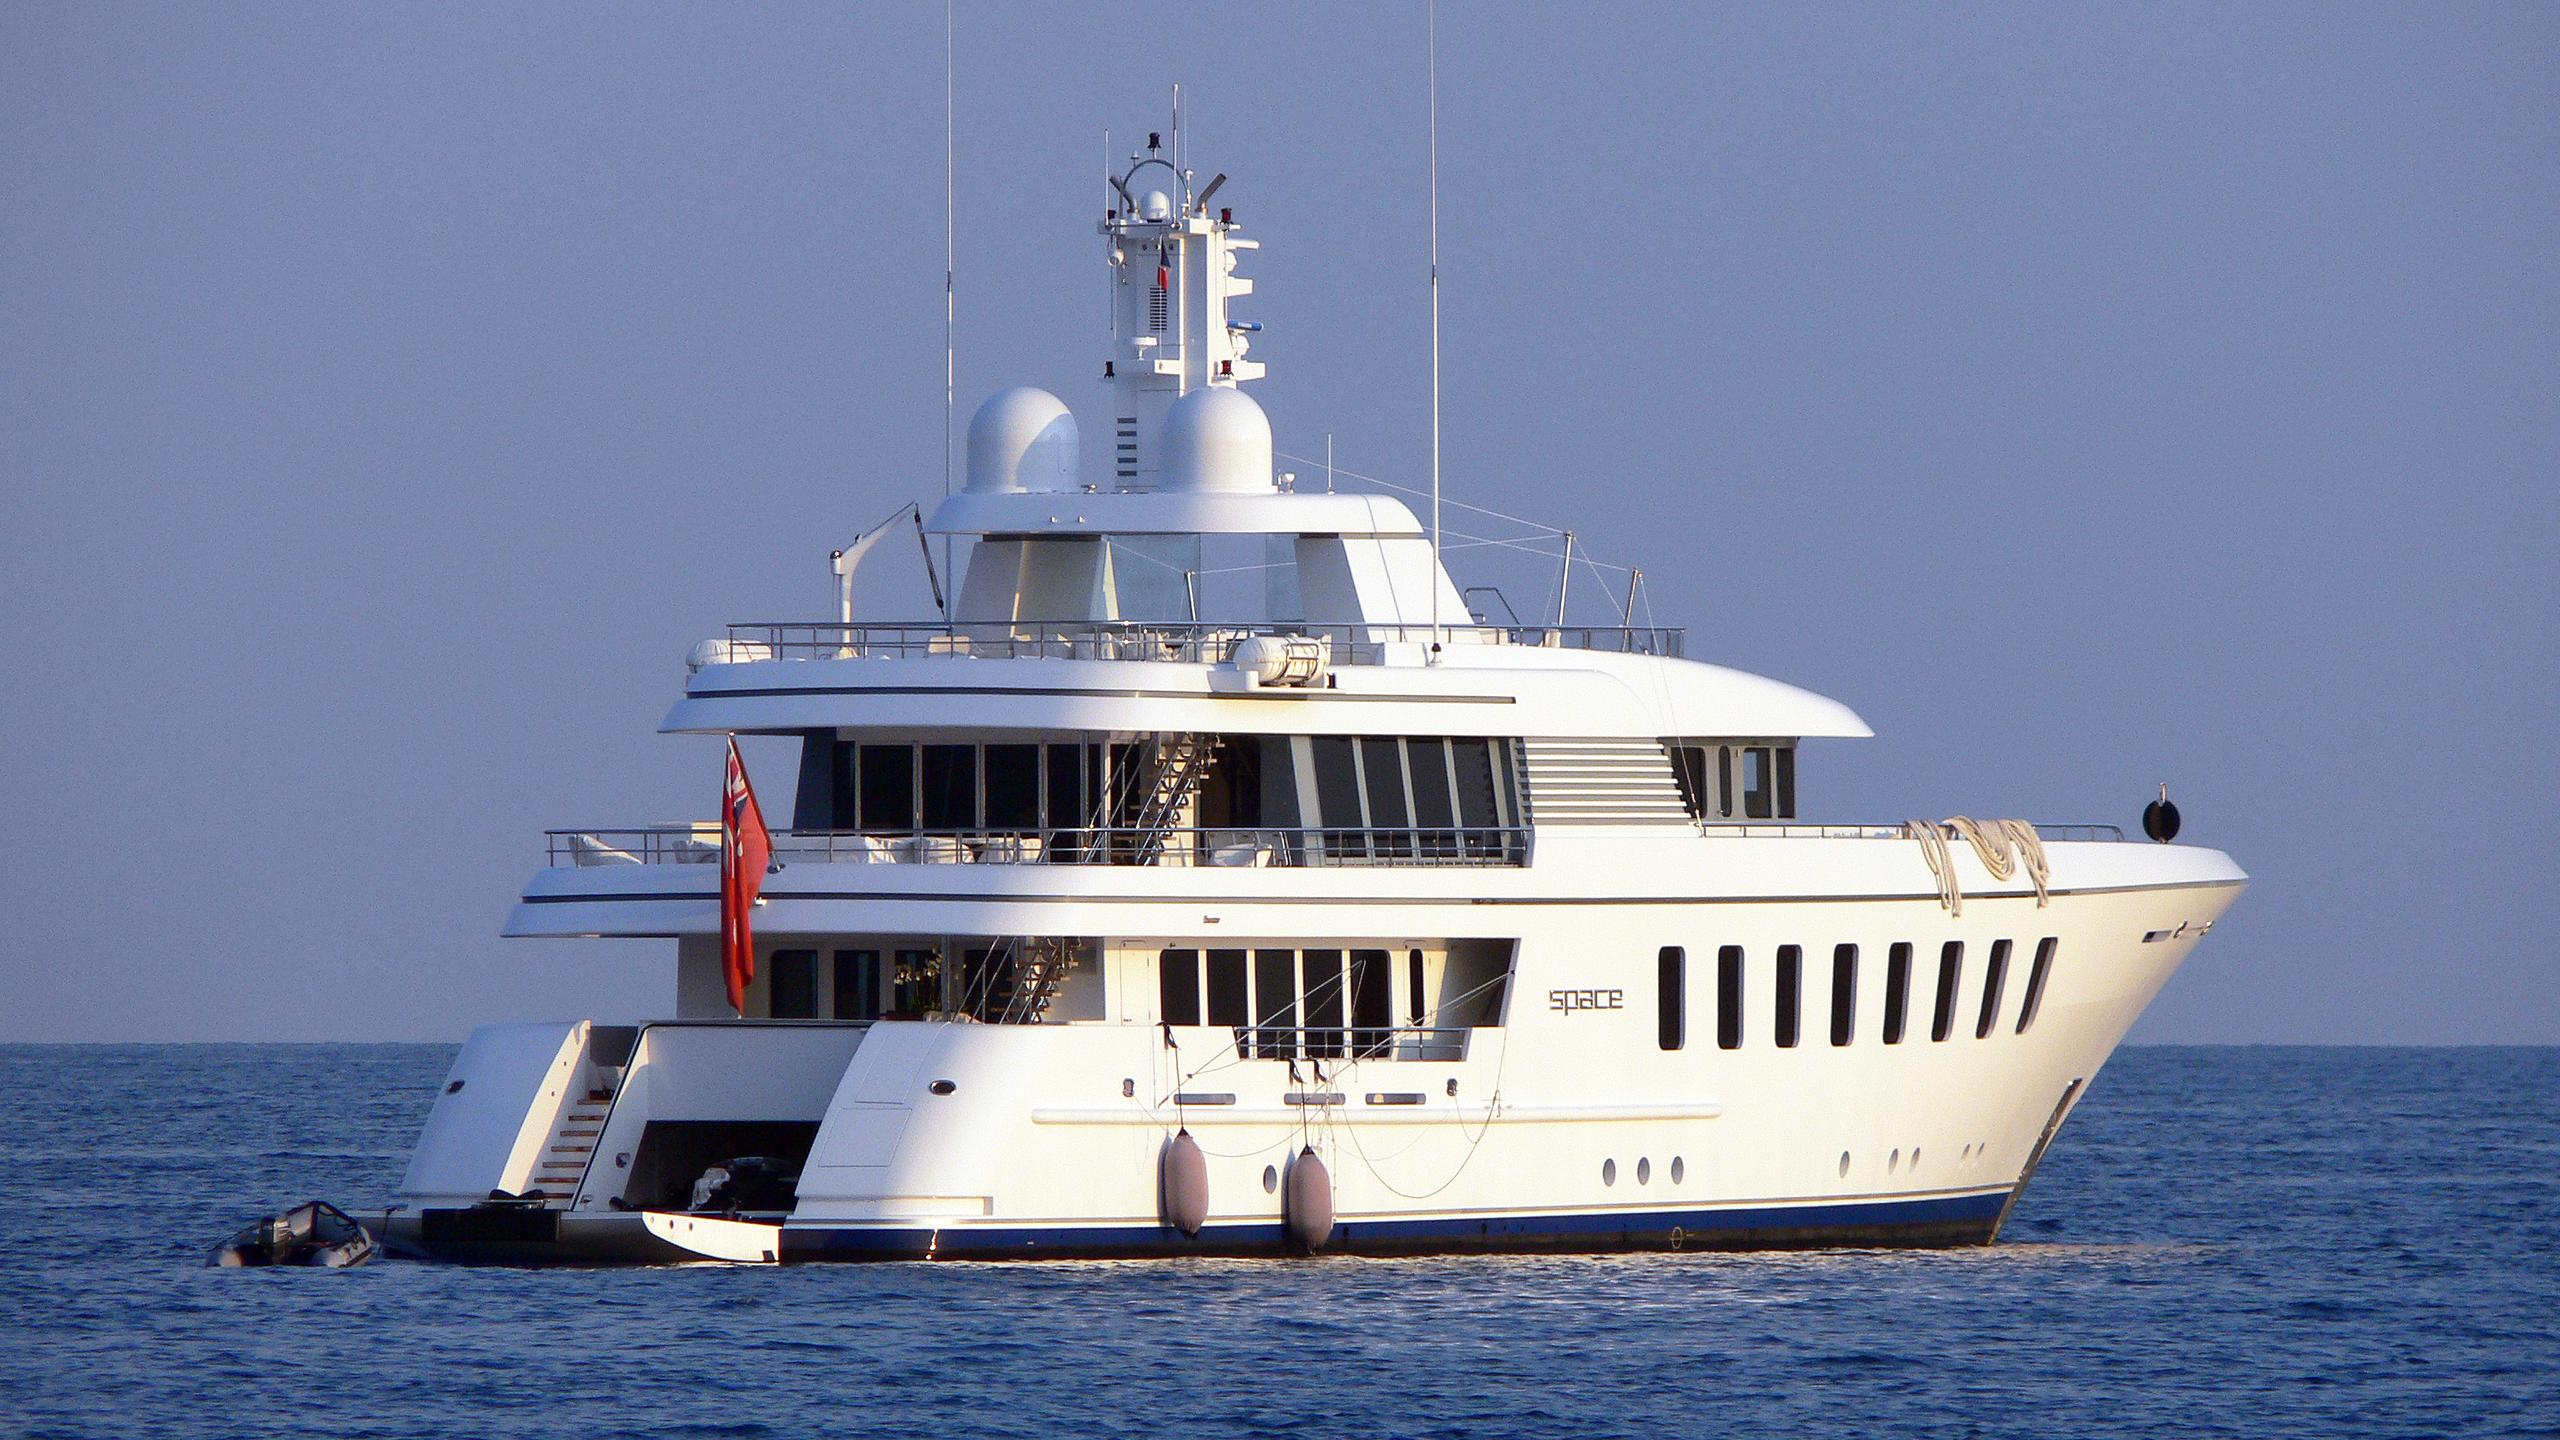 space-motor-yacht-feadship-f45-vintage-2007-45m-stern